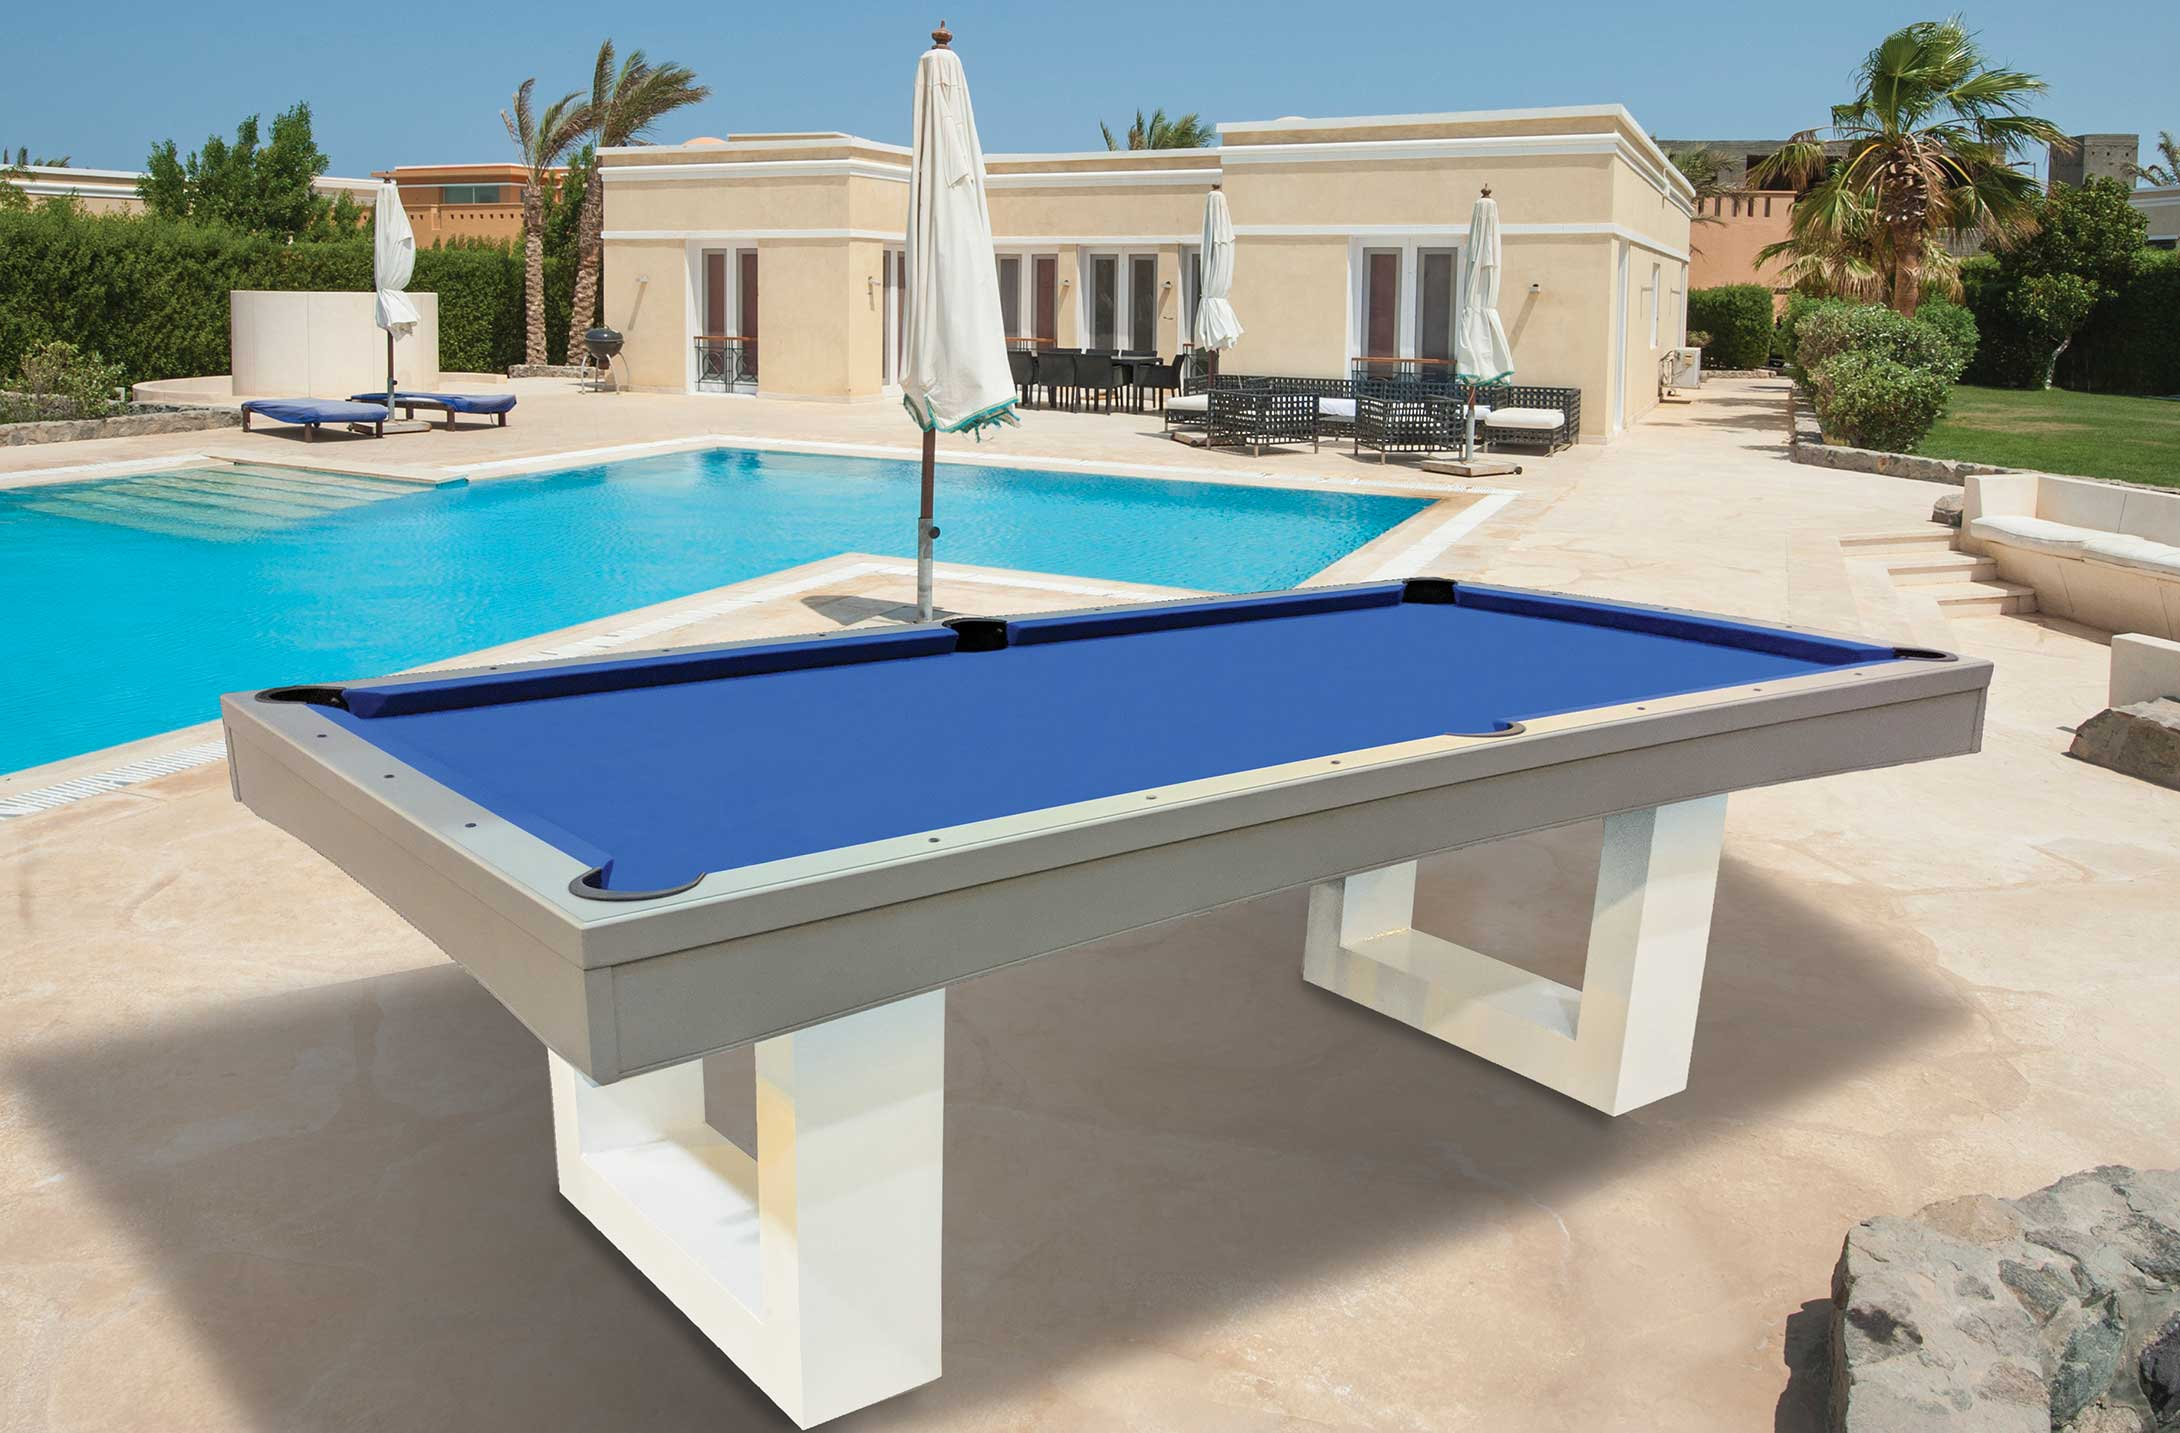 Horizon RR Outdoors Inc All Weather Billiards And Games - Composite pool table